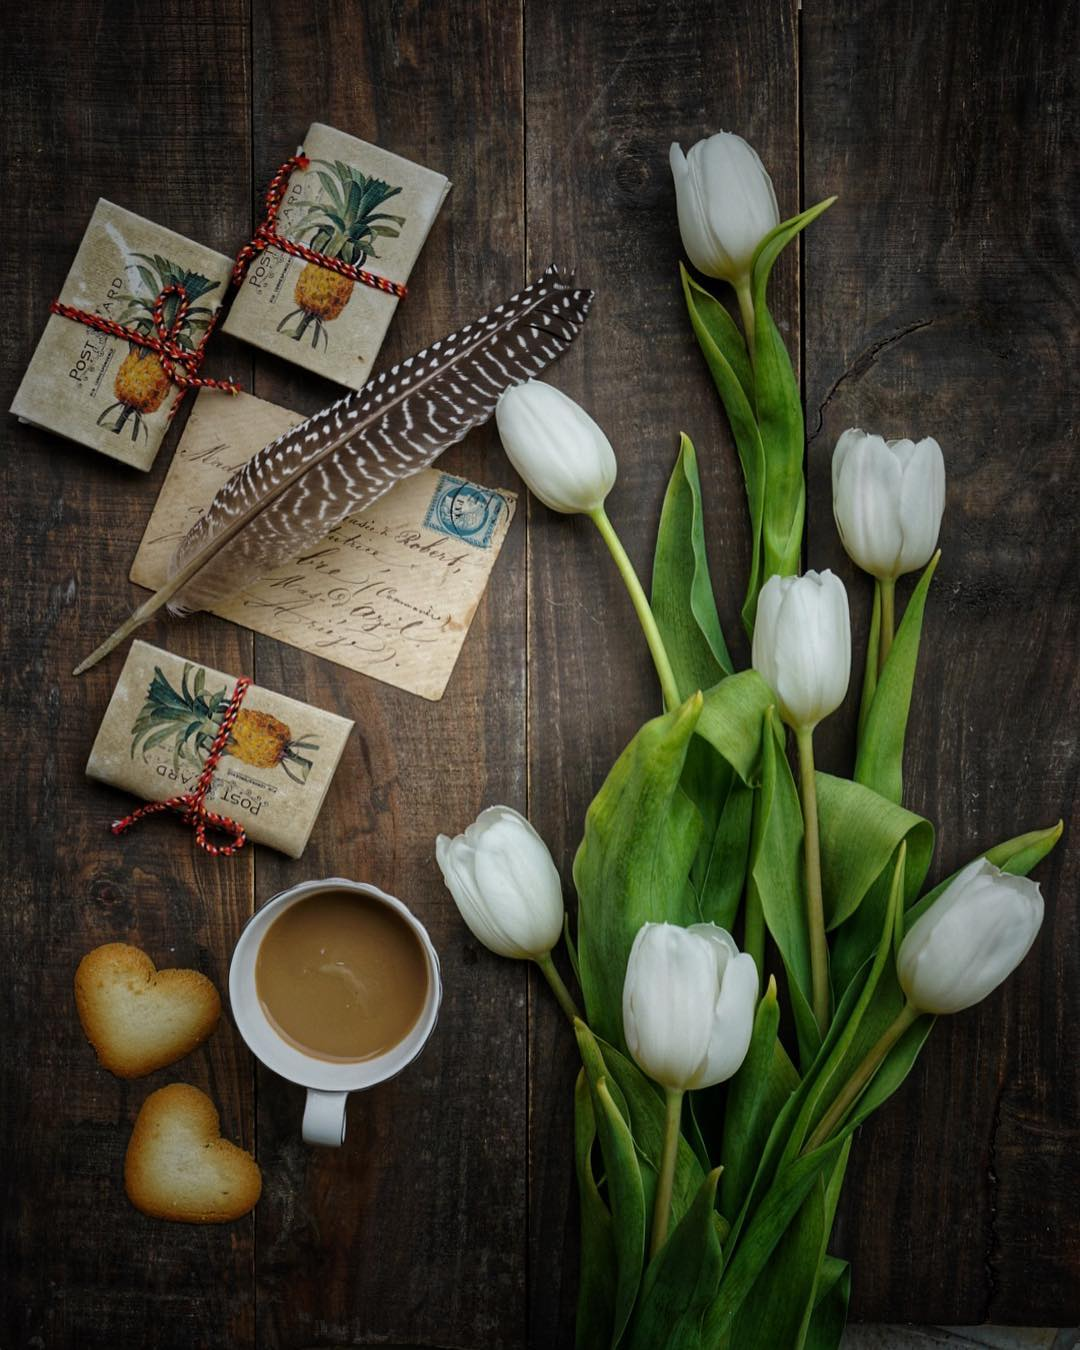 Coffee, cookies and flowers by Joe Oetemo